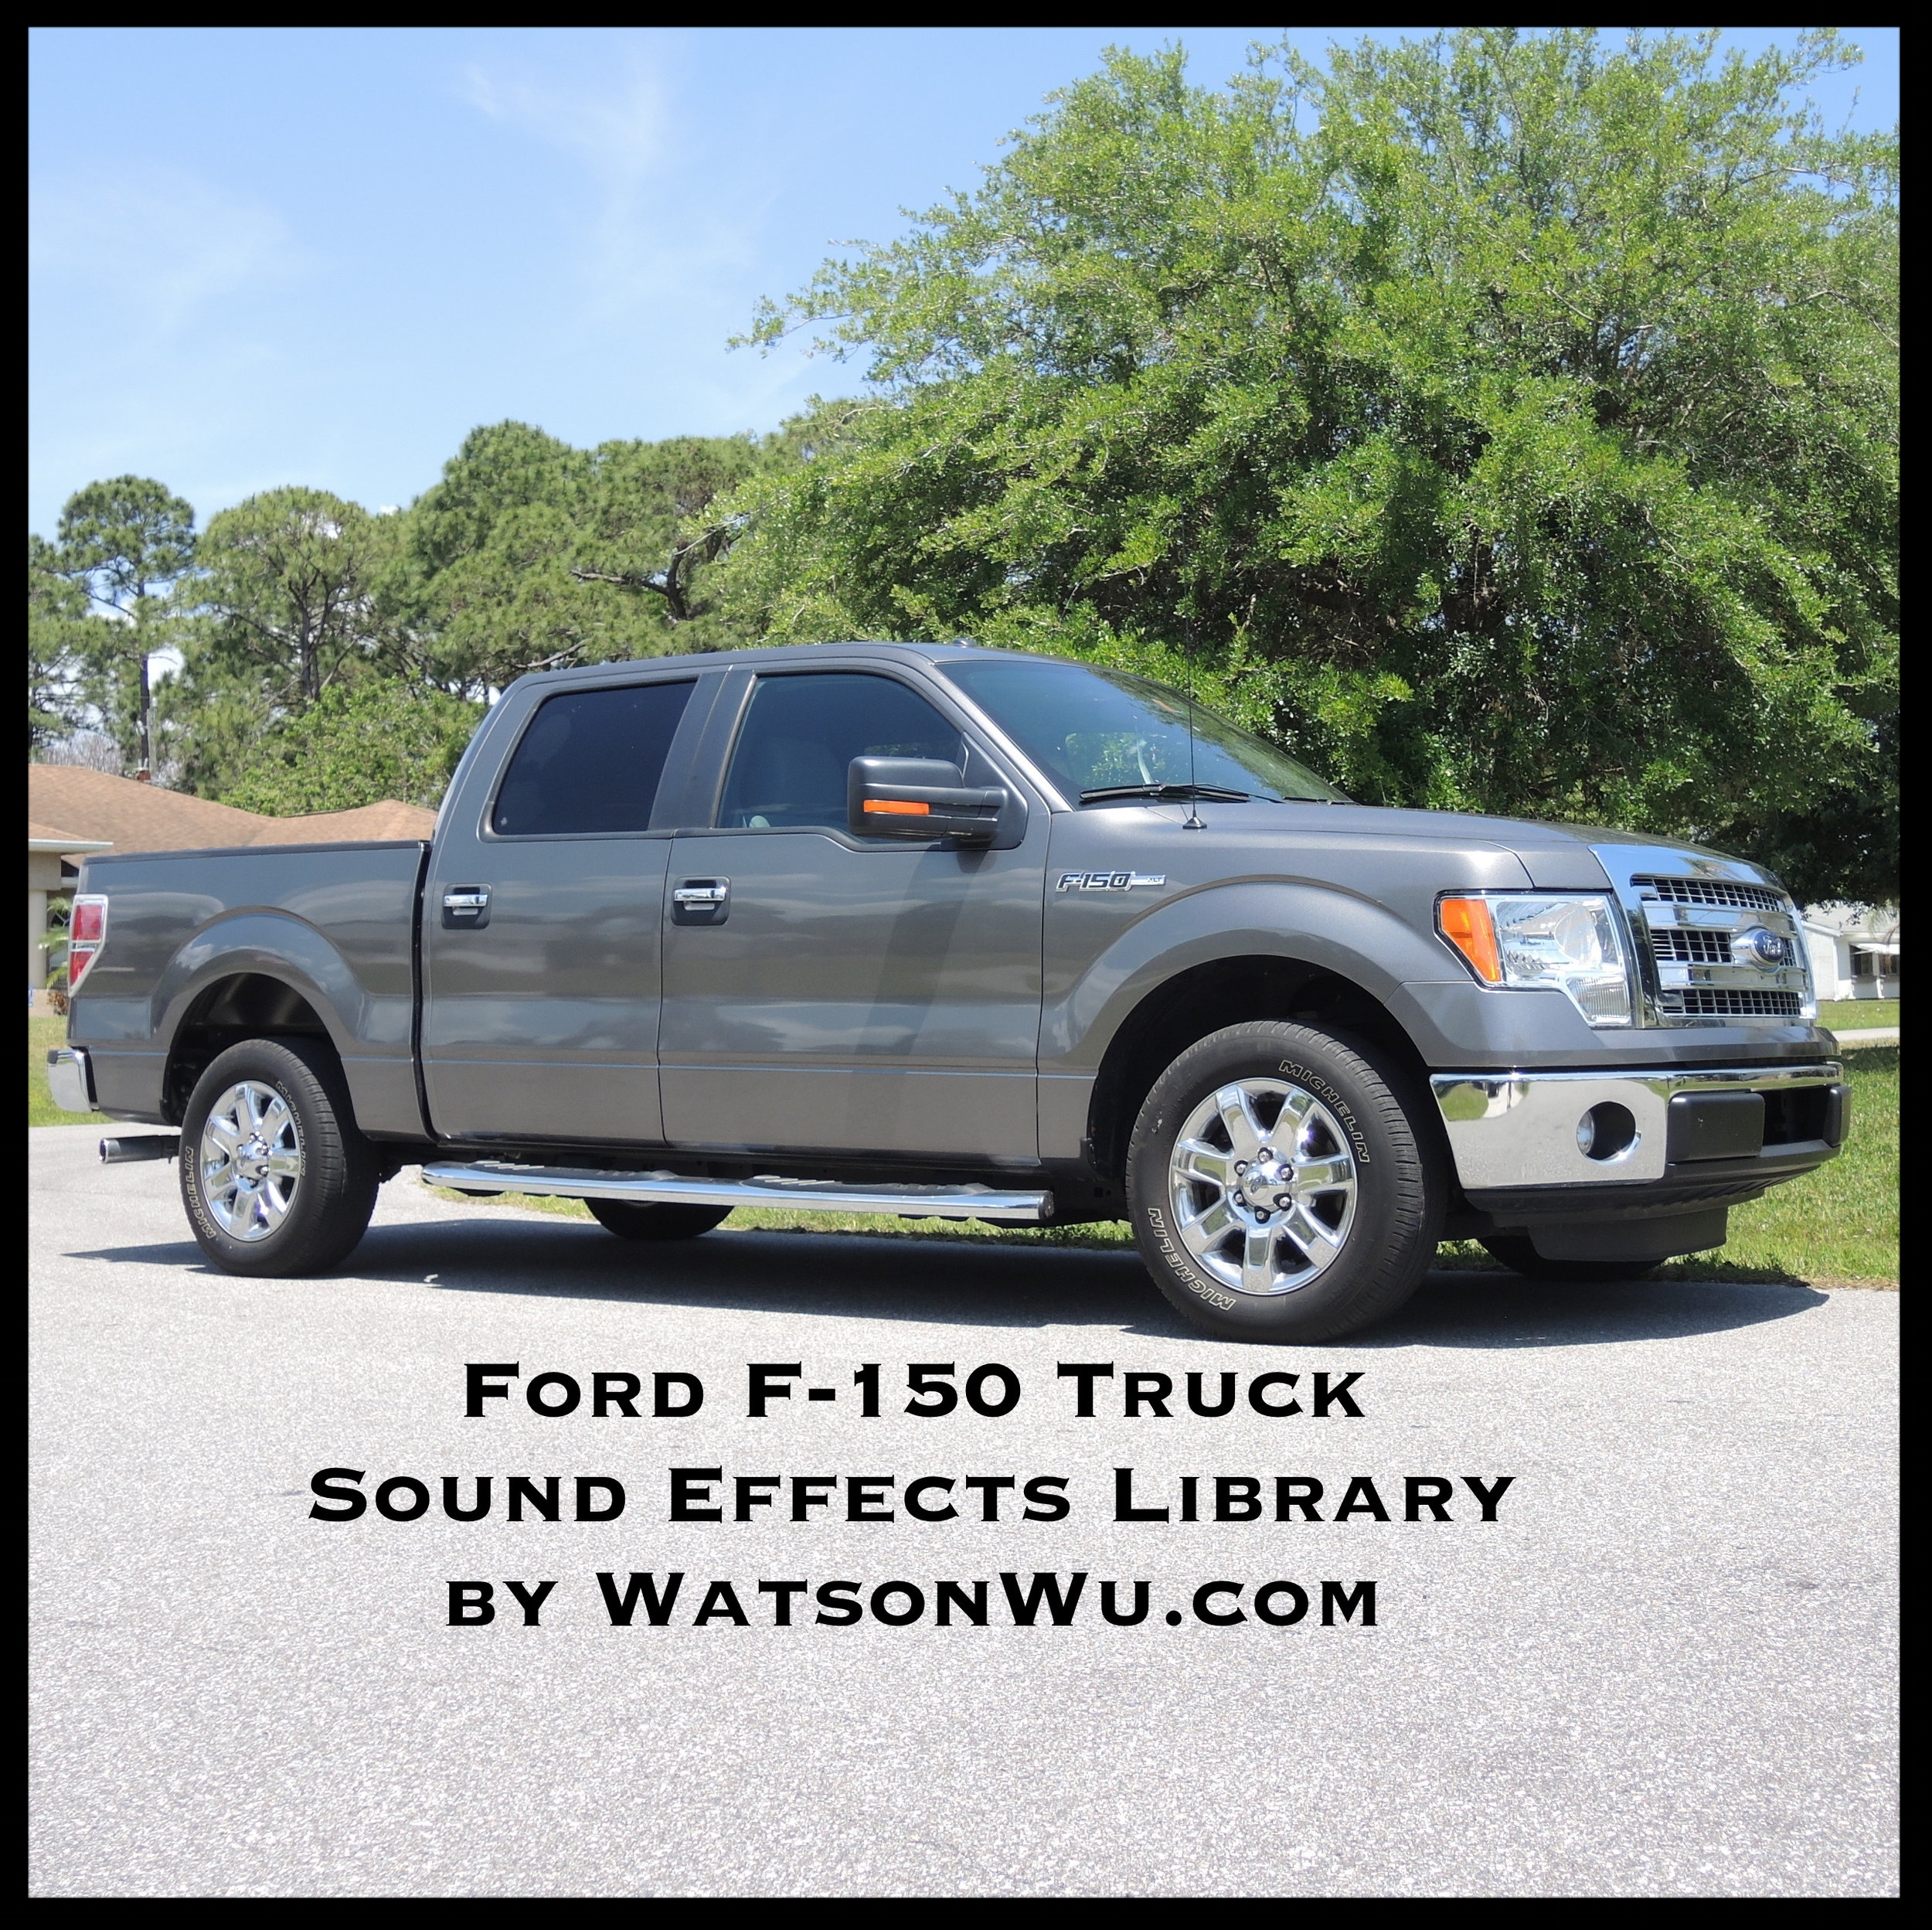 Ford F-150 Truck sound effects library by Watson Wu.JPG